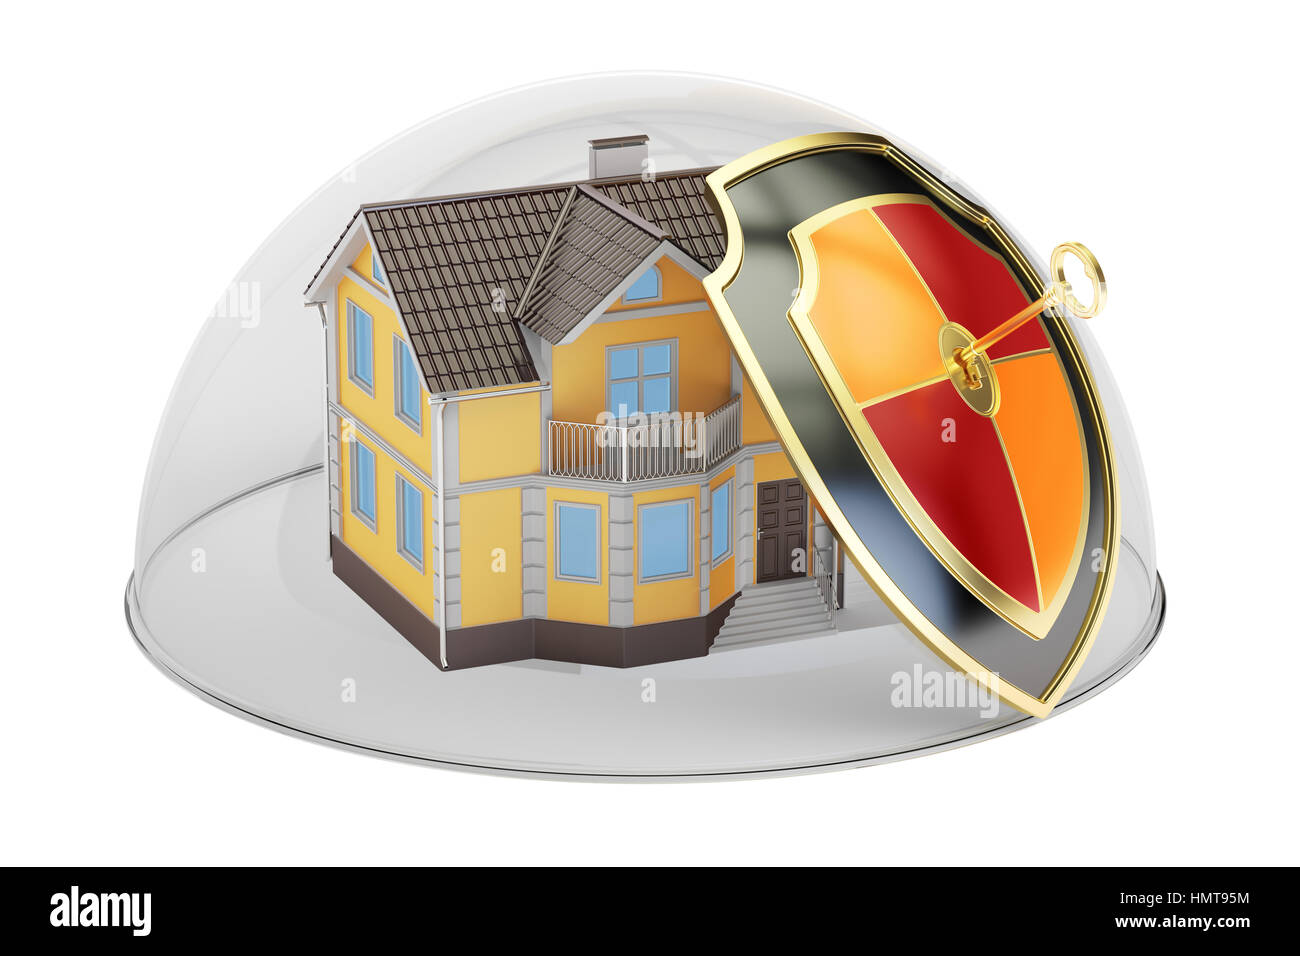 Home security and protection concept, house covered by glass dome. 3D rendering - Stock Image